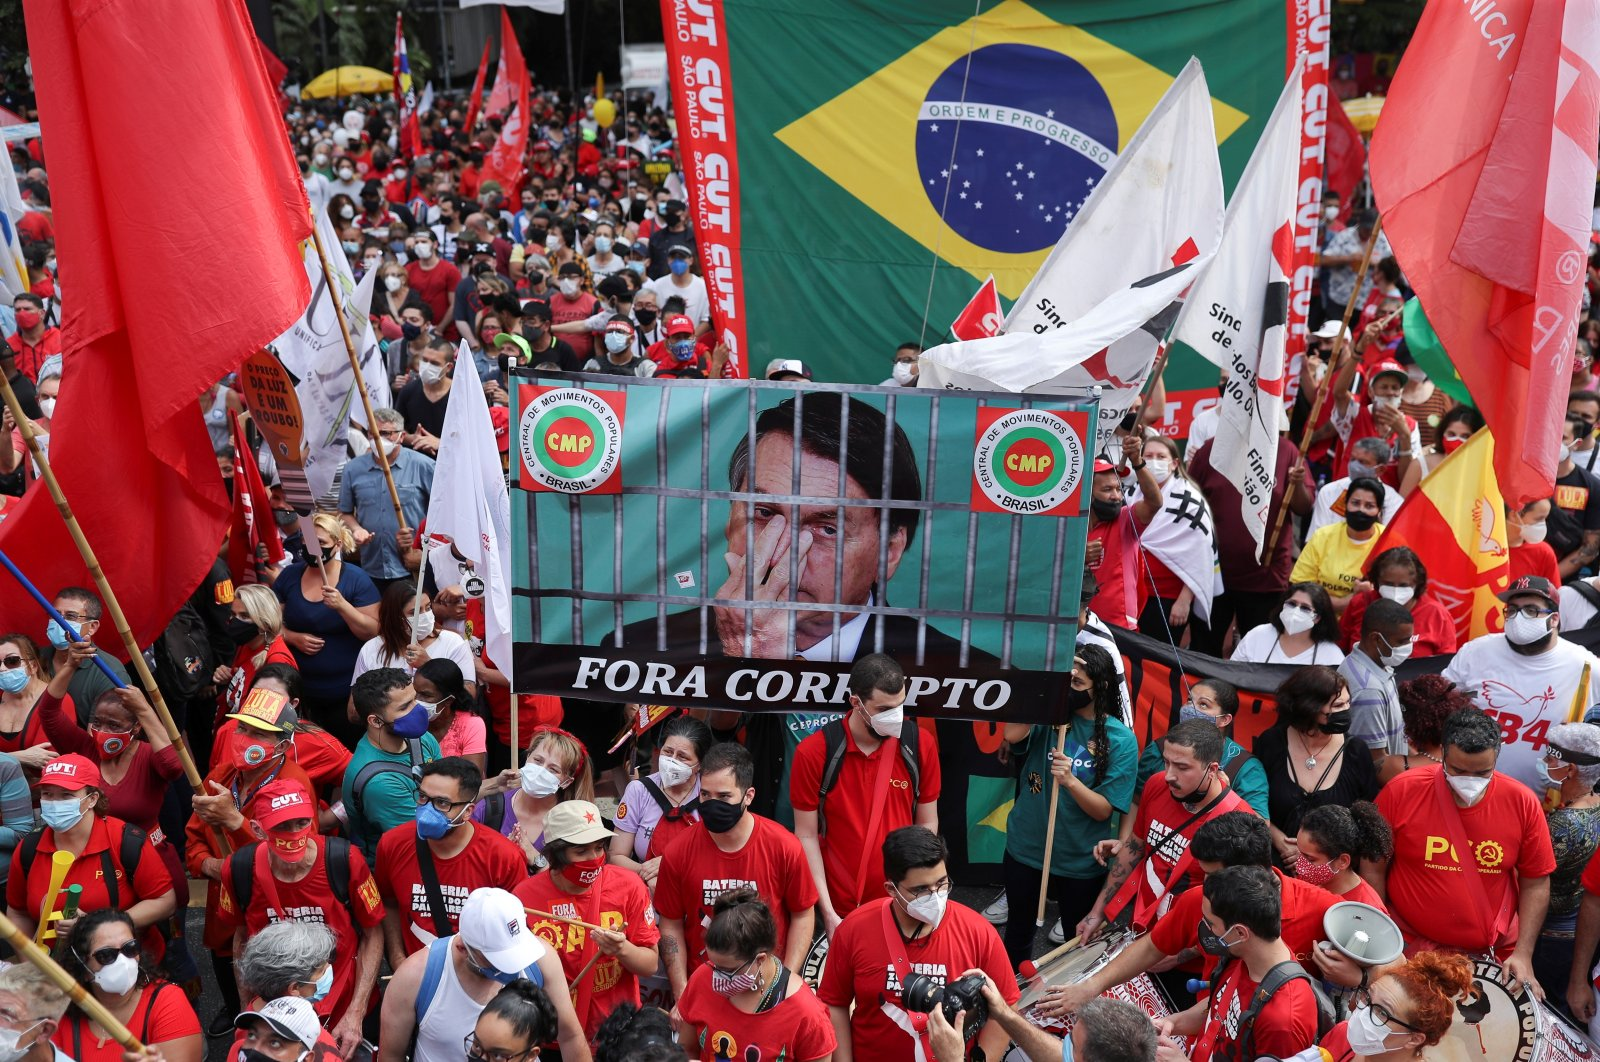 """Demonstrators protest against far-right President Jair Bolsonaro's administration with the image of Bolsonaro that reads: """"Out corrupt,"""" in Sao Paulo, Brazil, Oct. 2, 2021. (Reuters Photo)"""